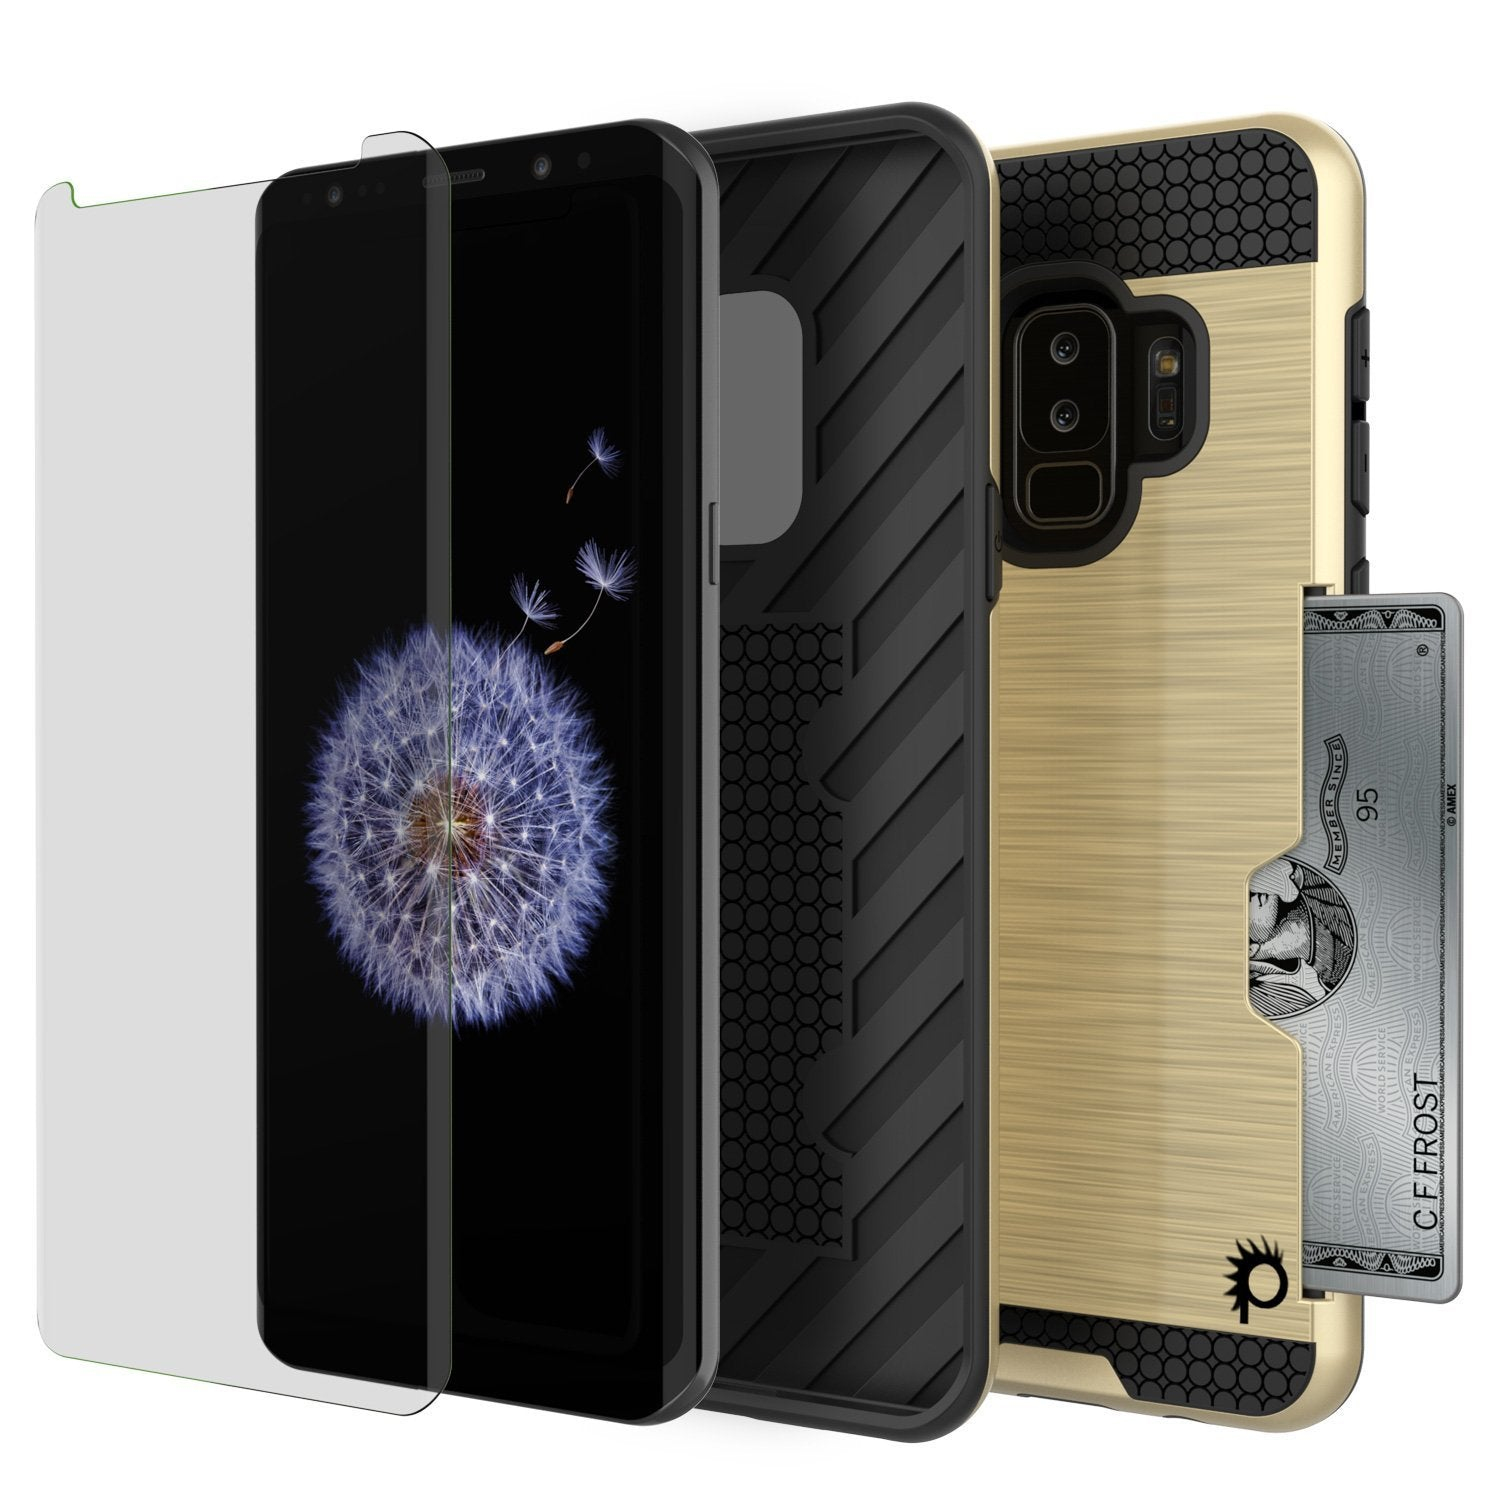 Galaxy S9 Plus Case, PUNKcase [SLOT Series] [Slim Fit] Dual-Layer Armor Cover w/Integrated Anti-Shock System [Gold]